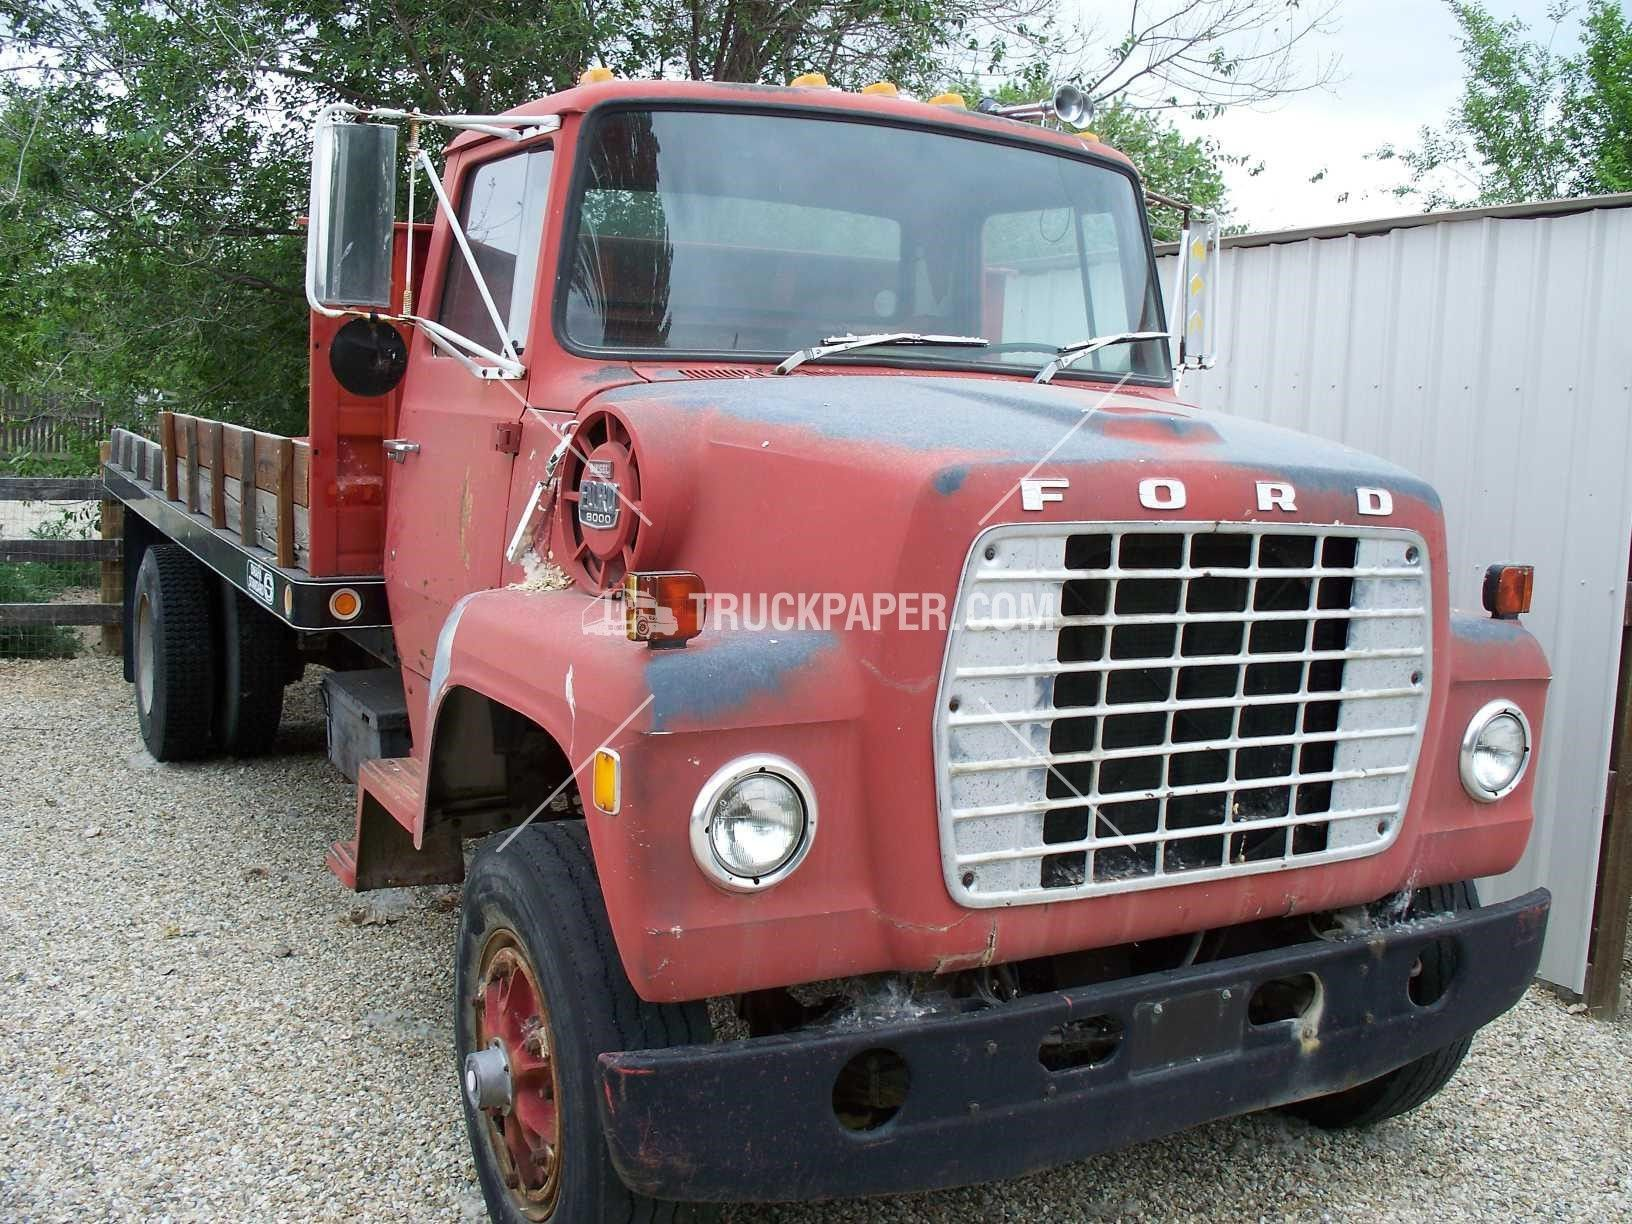 25 best flatbed trucks for sale ideas on pinterest old trucks for sale dually trucks for sale and flatbeds for pickups